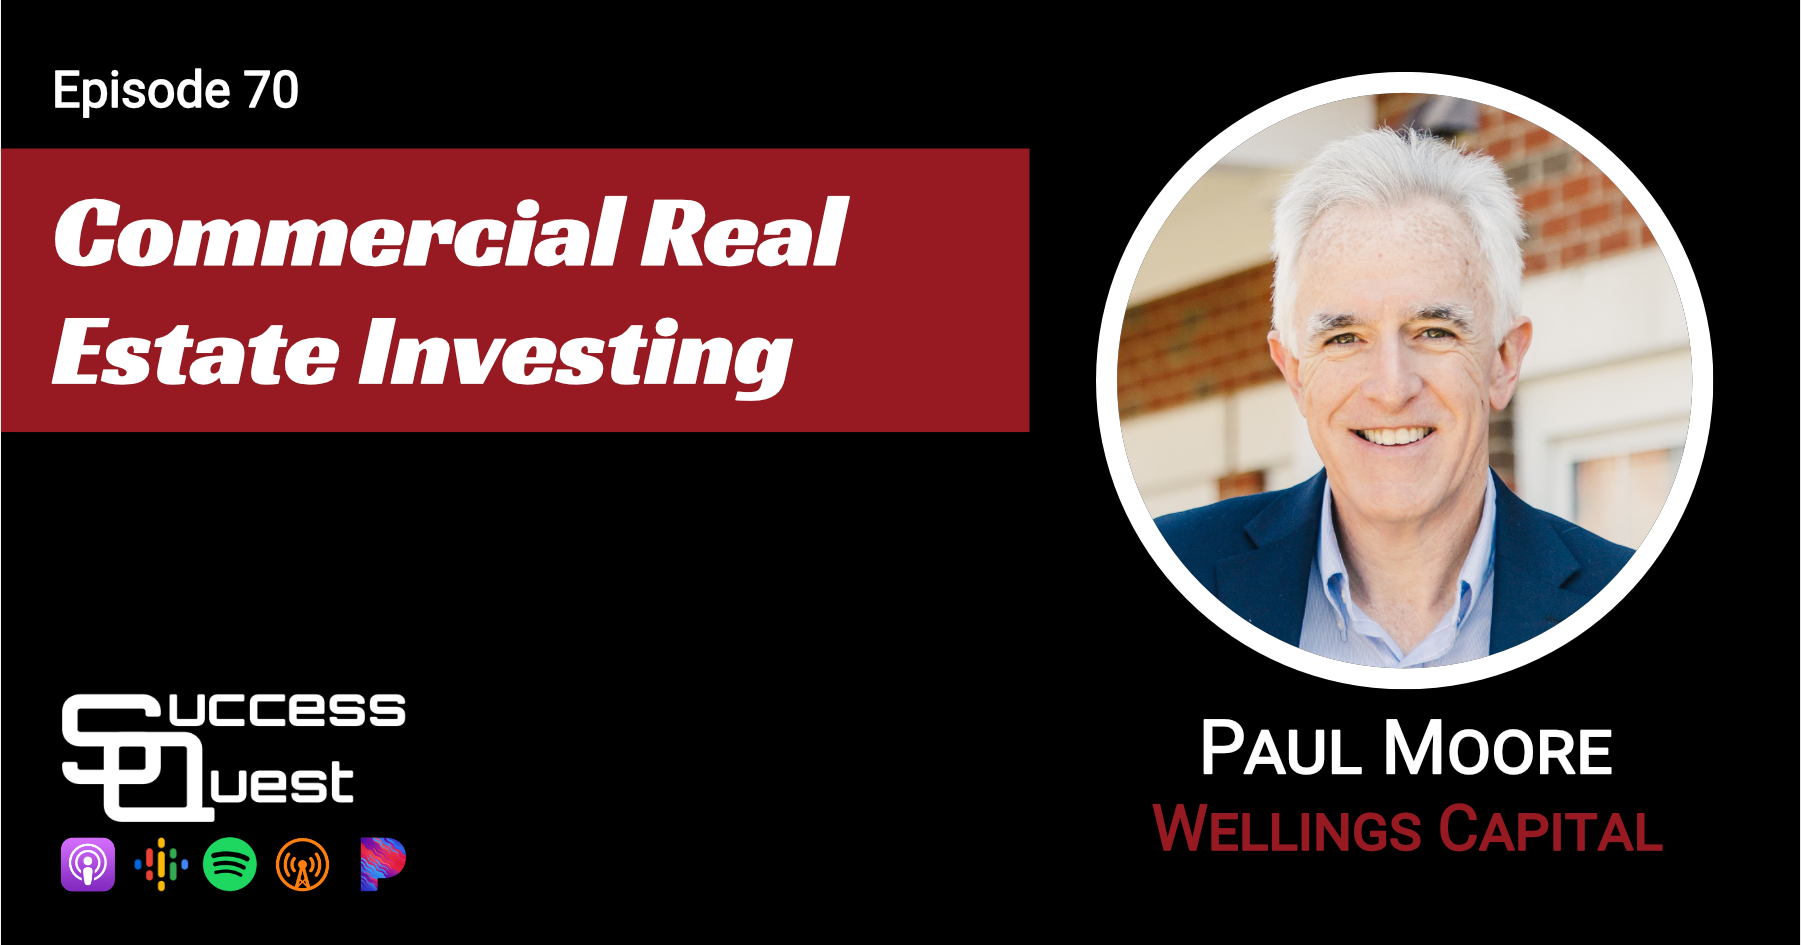 Commercial Real Estate Investing Paul Moore Wellings Capital SuccessQuest